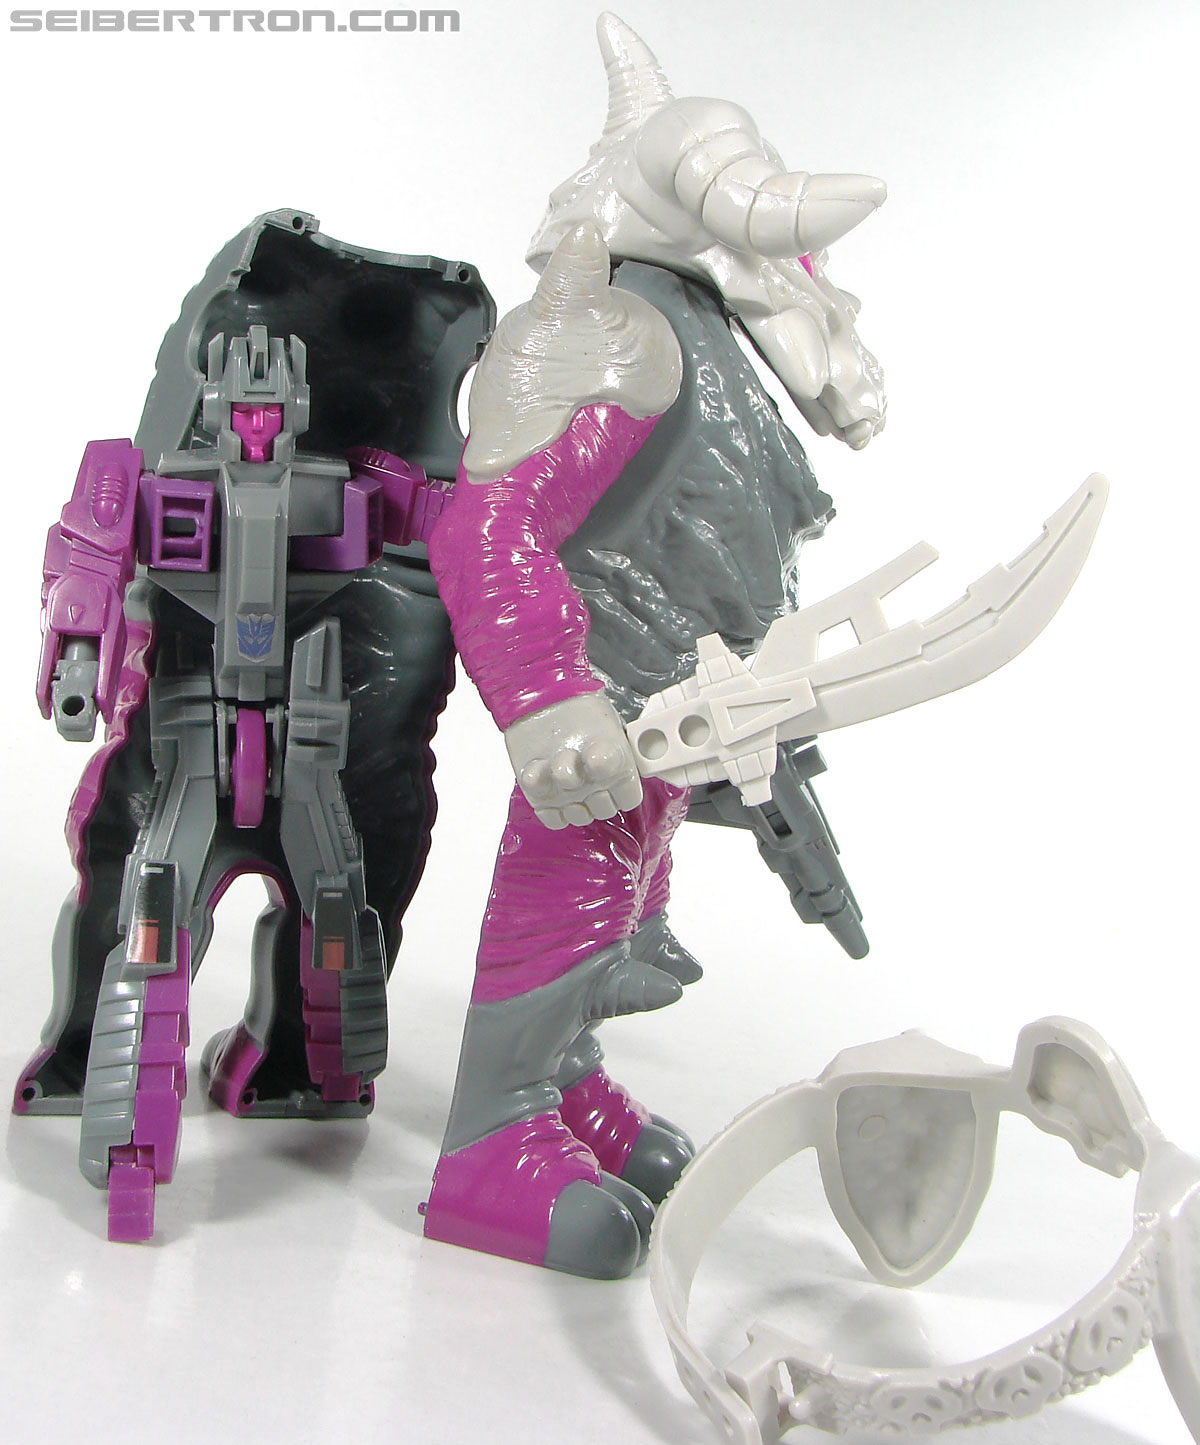 Transformers Super God Masterforce Skullgrin (Dauros) (Image #100 of 196)